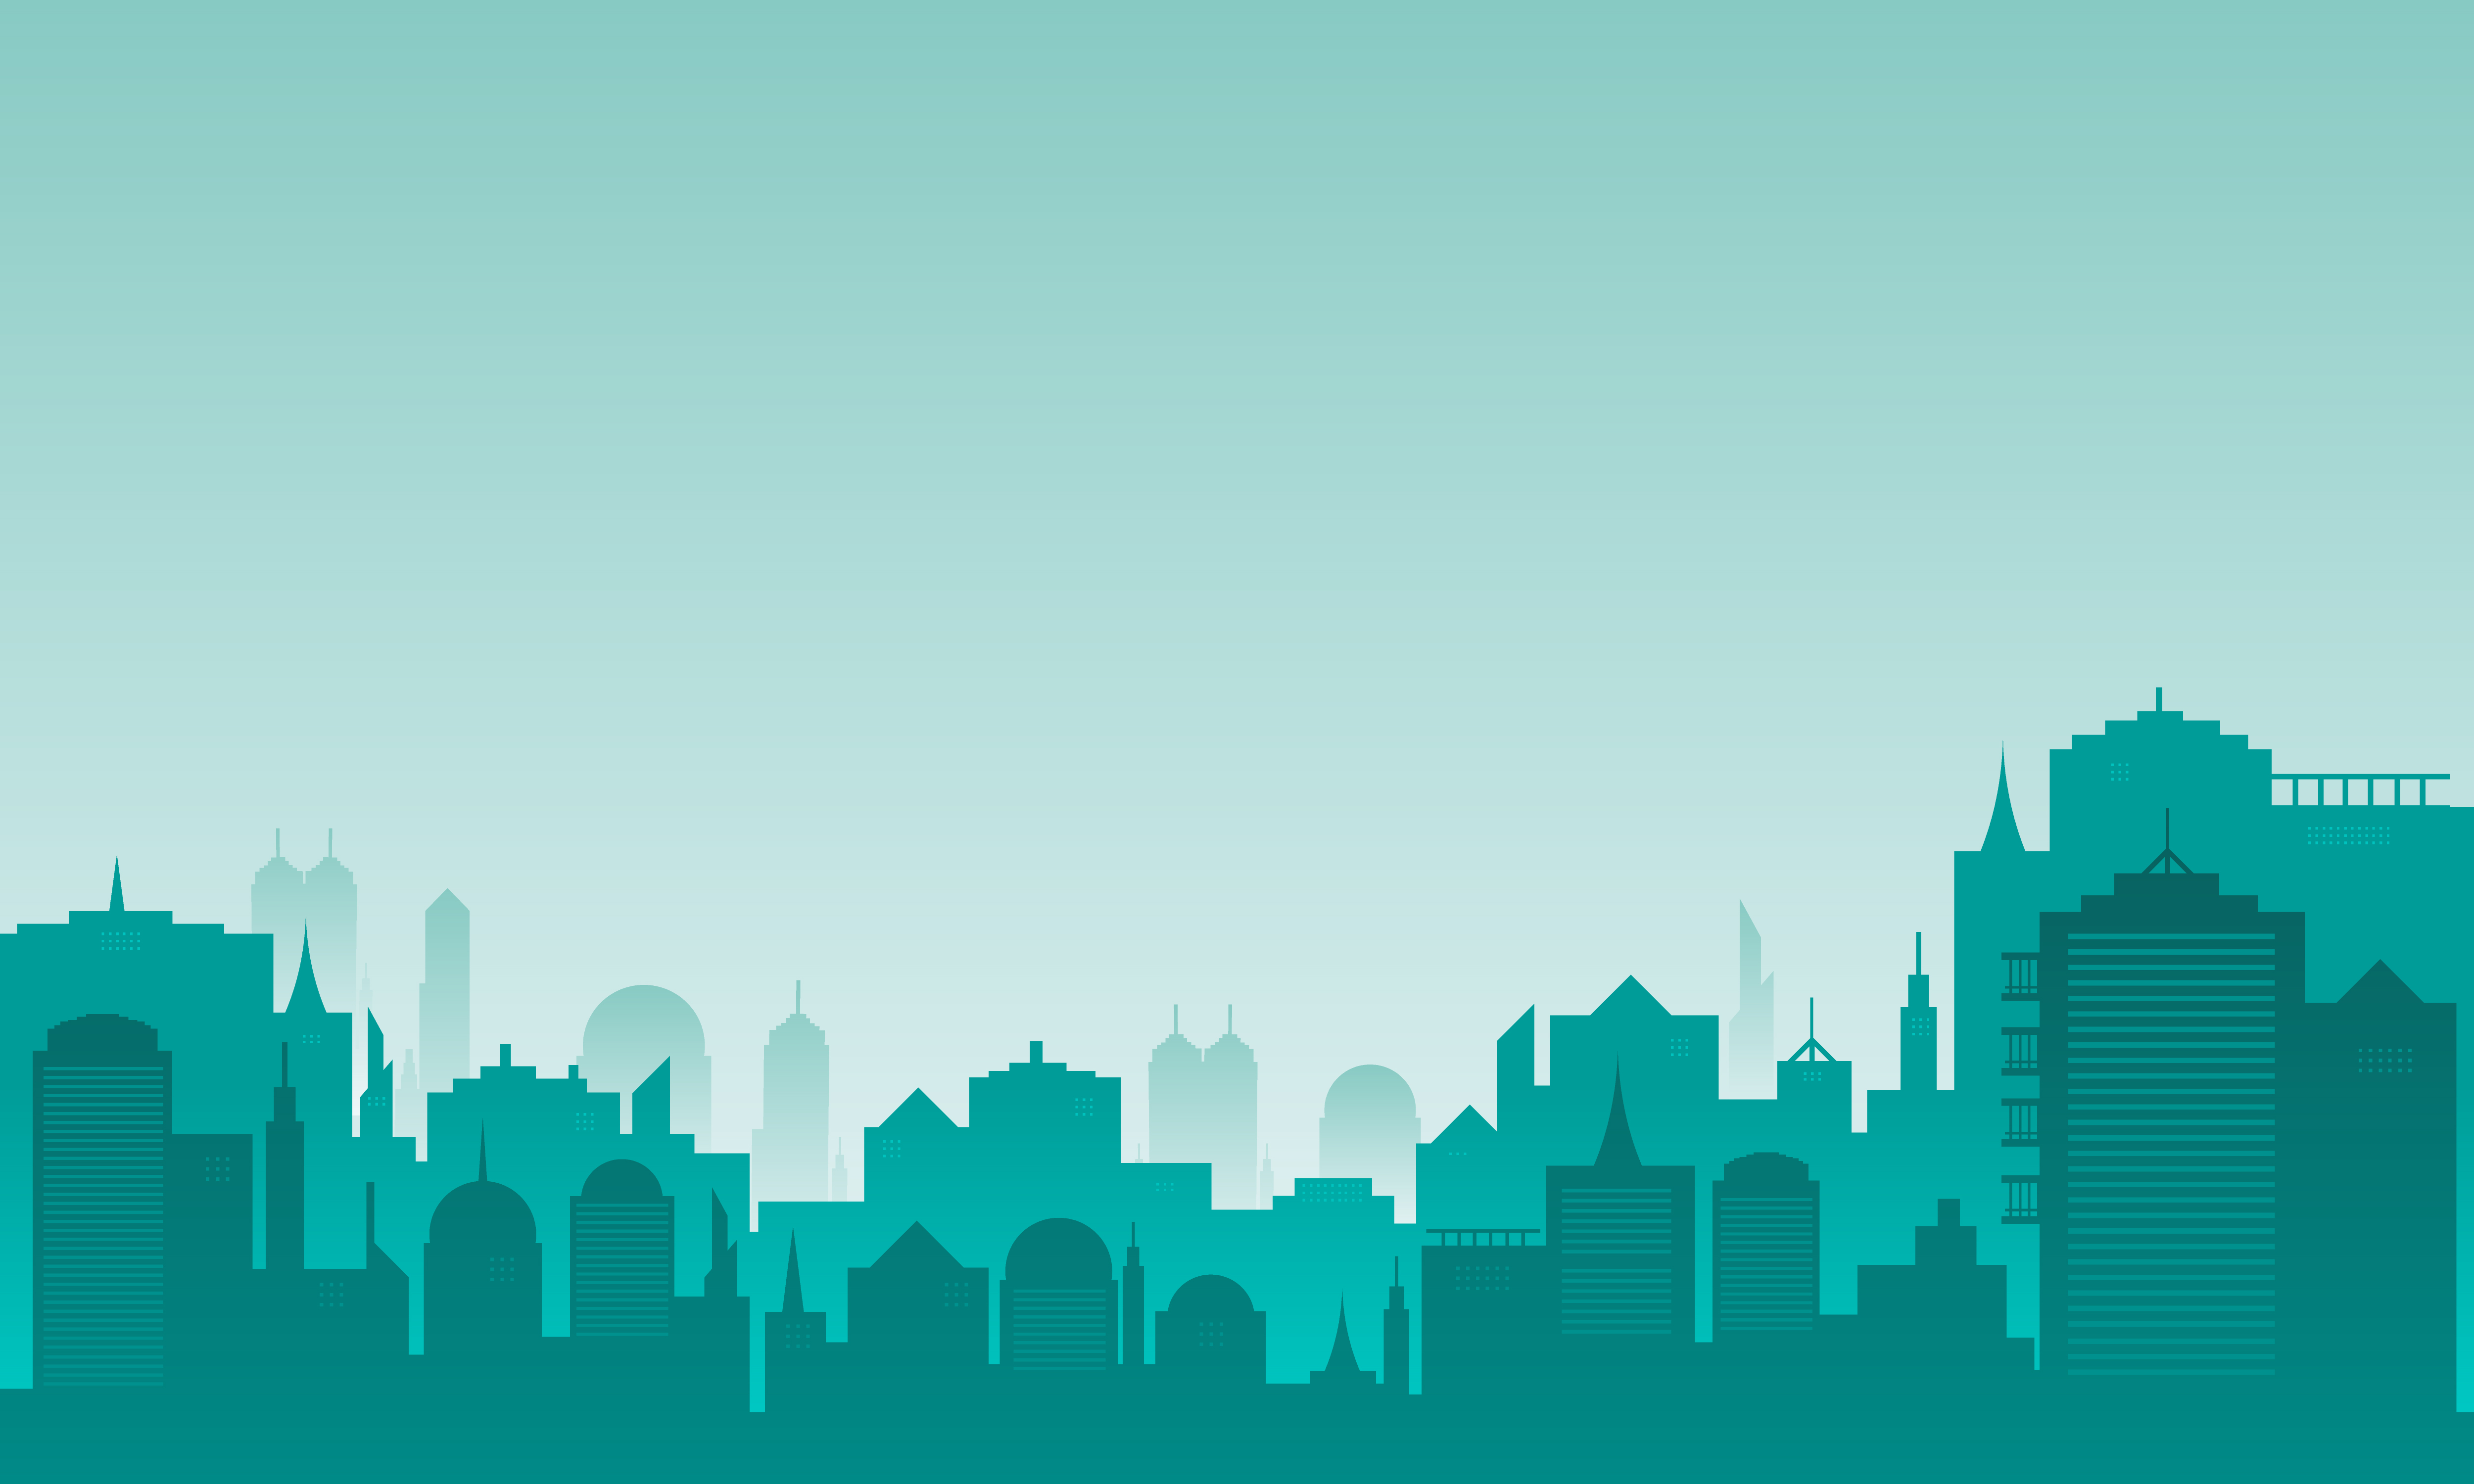 Download Free Background City With Many Buildings Graphic By Cityvector91 for Cricut Explore, Silhouette and other cutting machines.